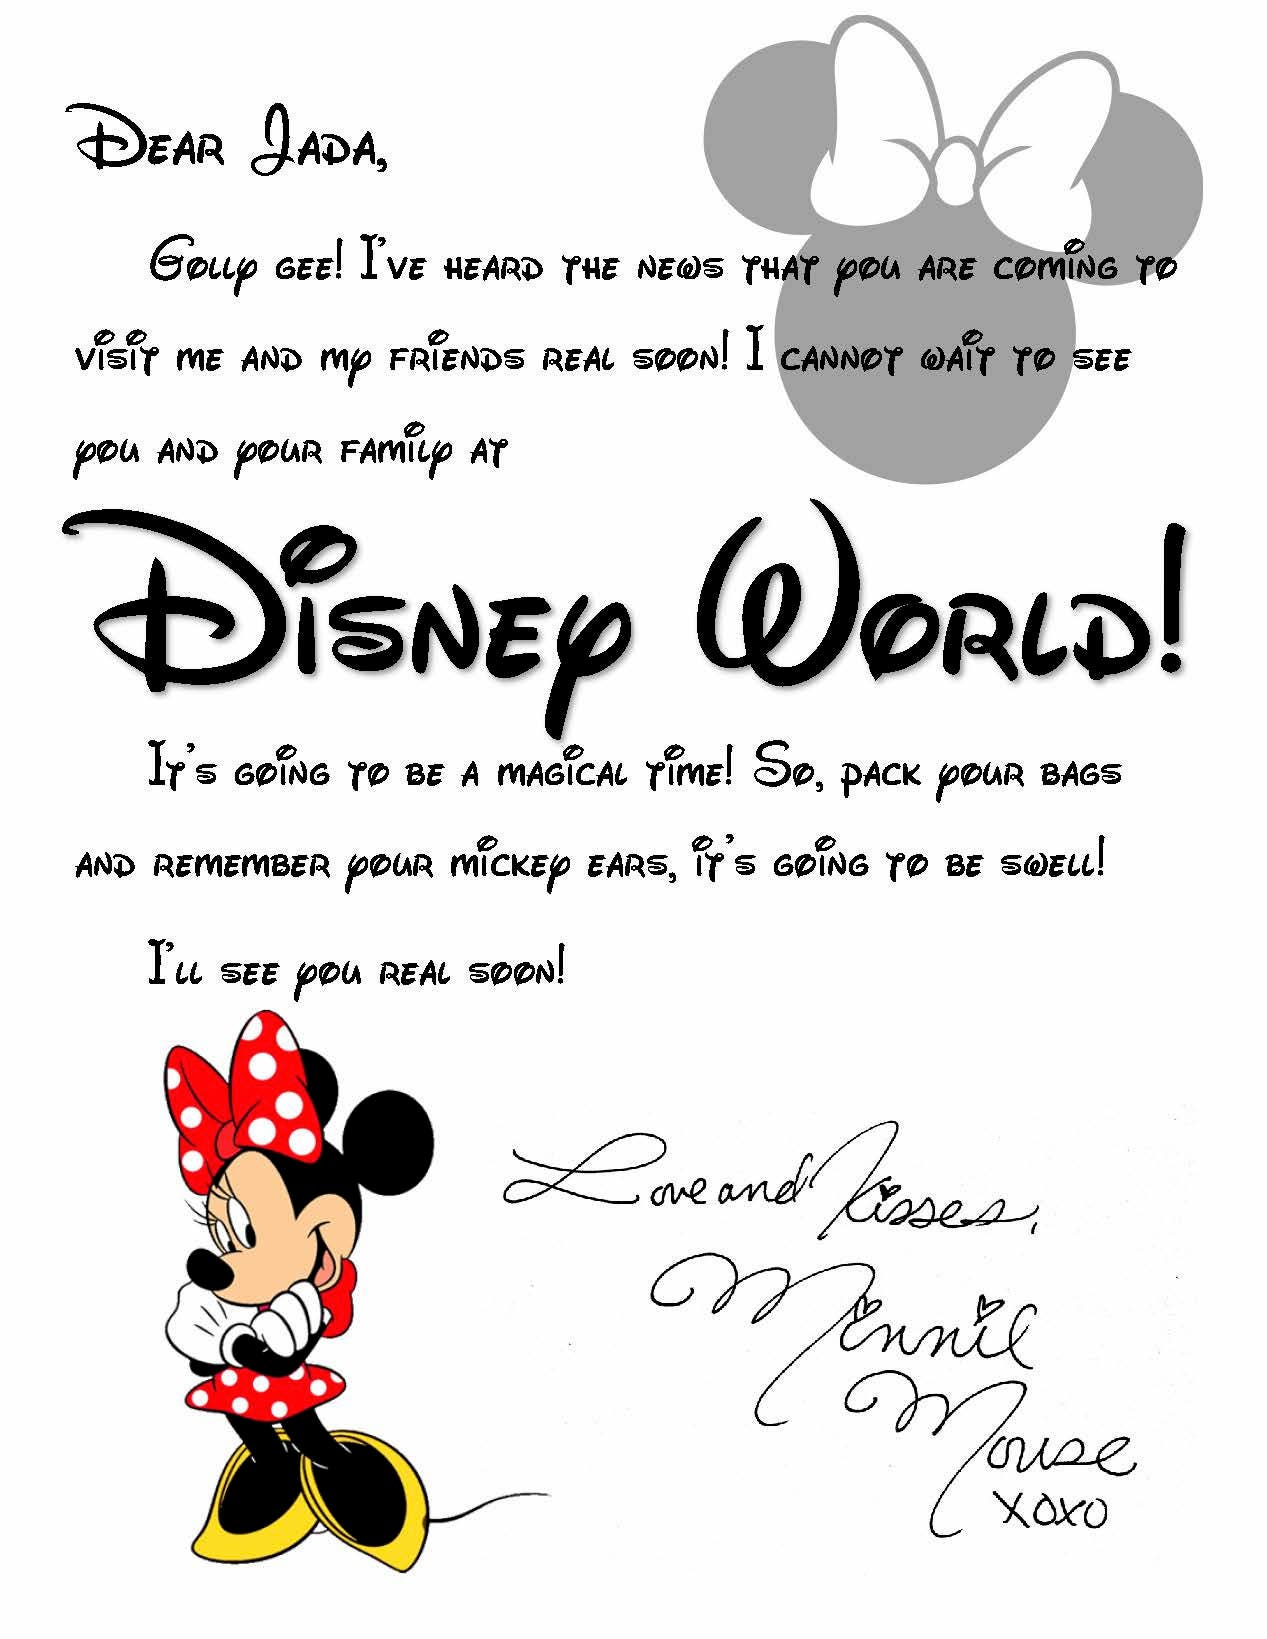 Custom Disney World Letter from Minnie Invitation to Disney